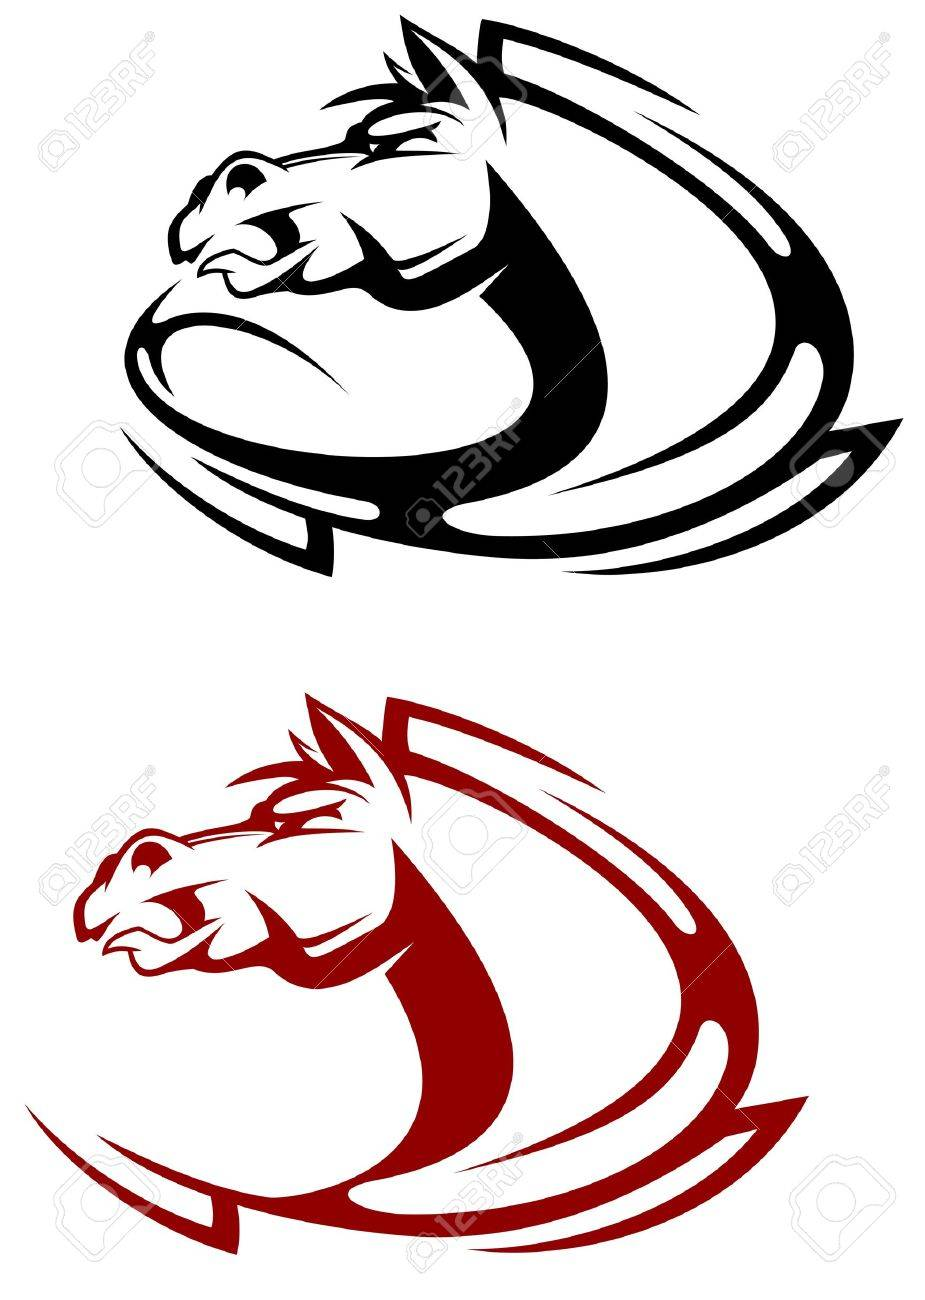 Horse tattoo symbol for design isolated on white Stock Vector - 7132109